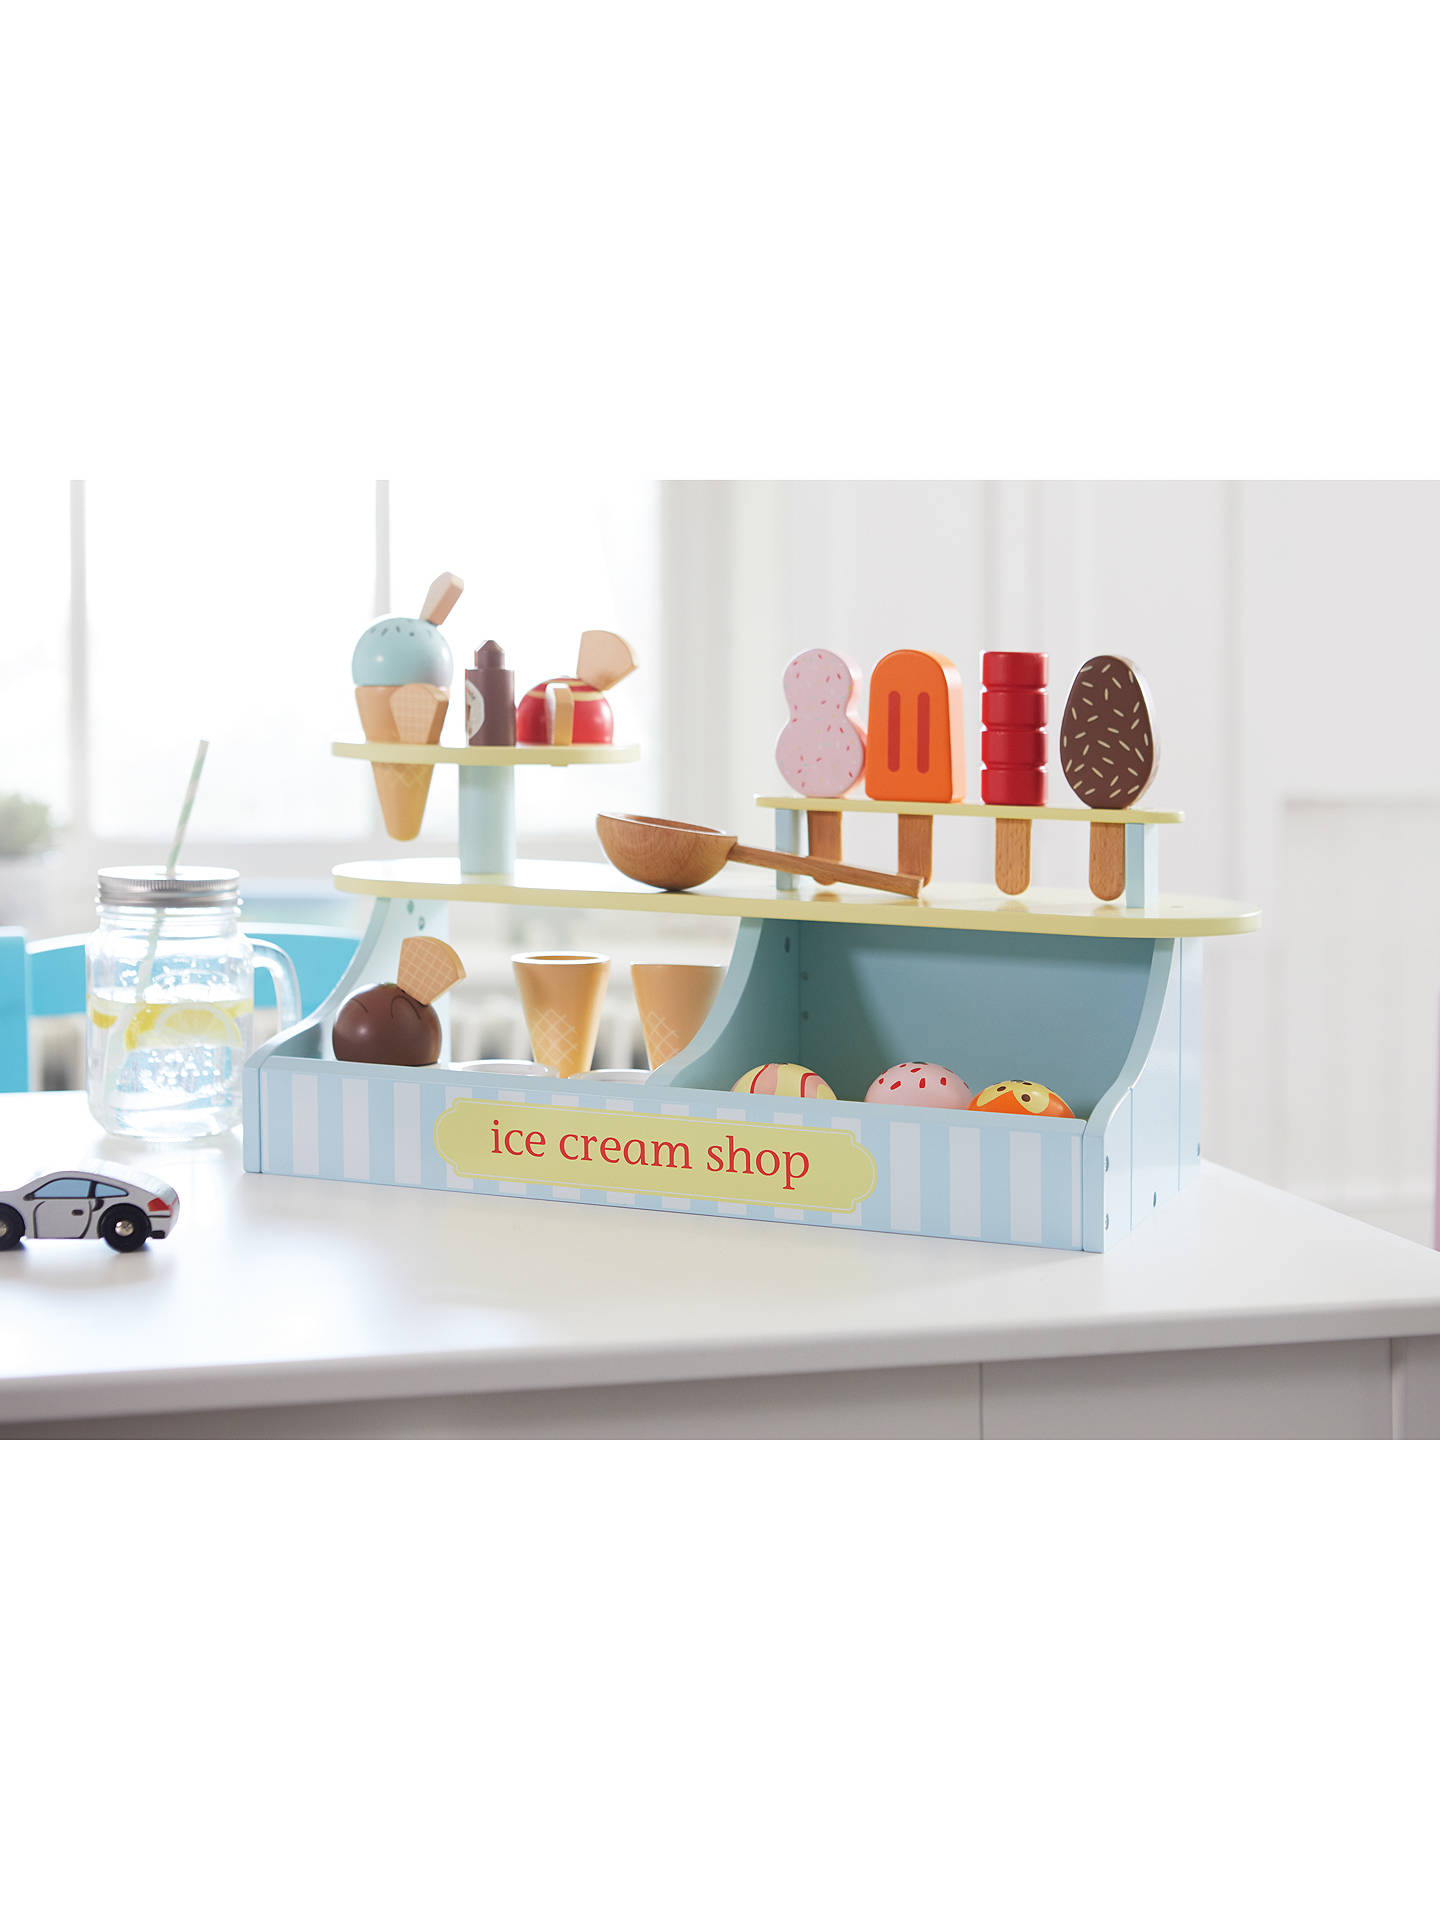 BuyGreat Little Trading Co Lolly & Scoop Ice Cream Shop Set Wooden Toy Online at johnlewis.com